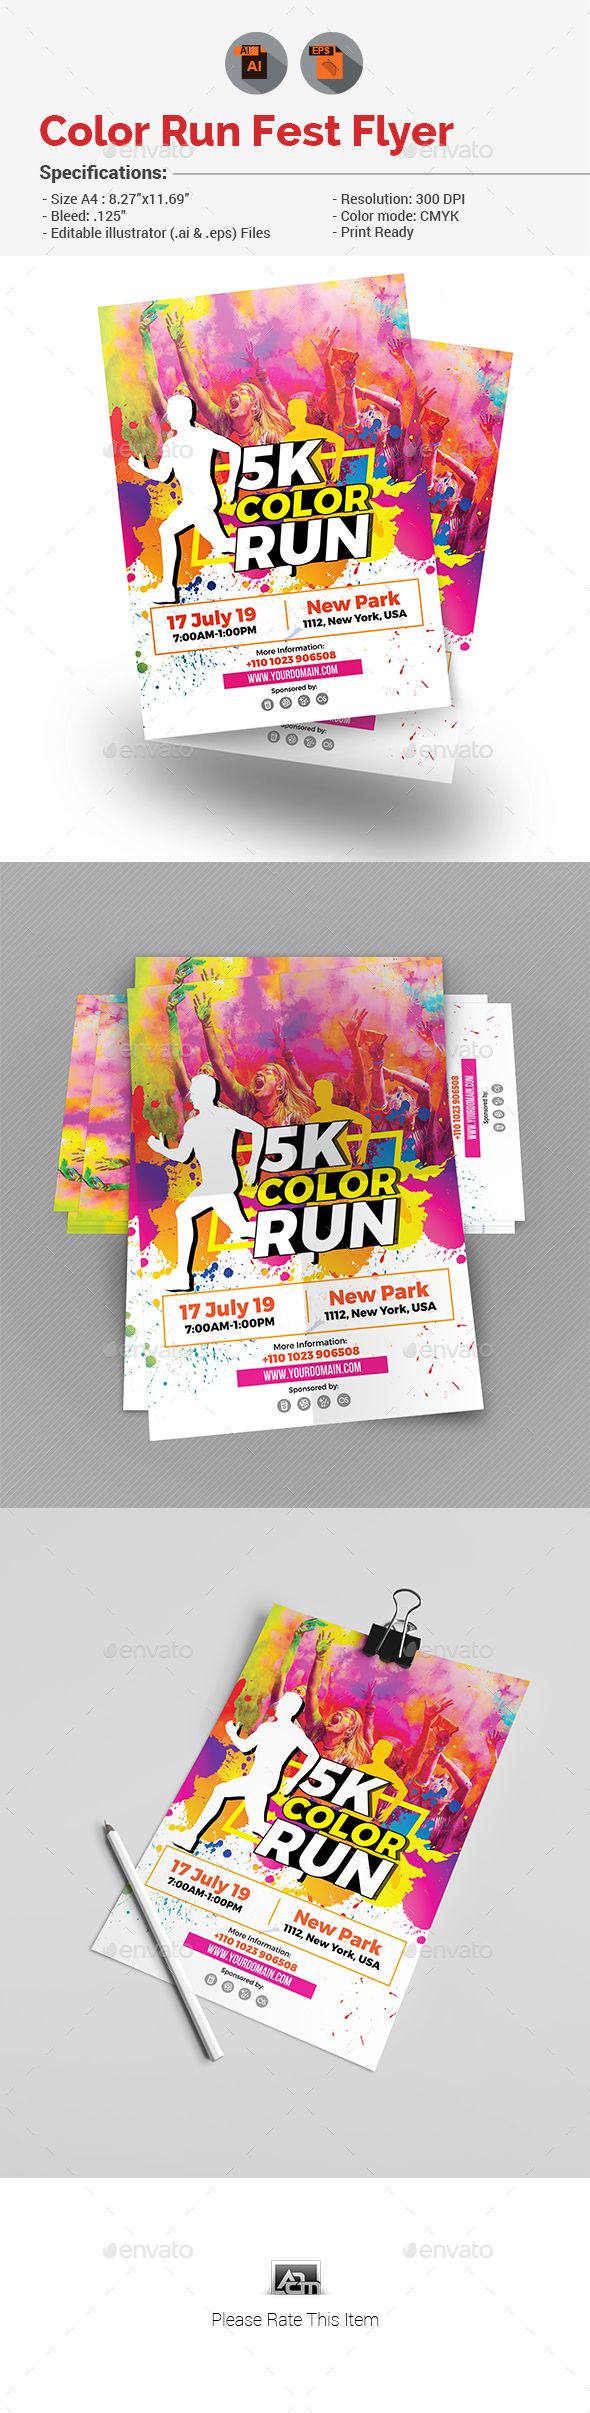 Graphicriver Color Run Flyer 19279521